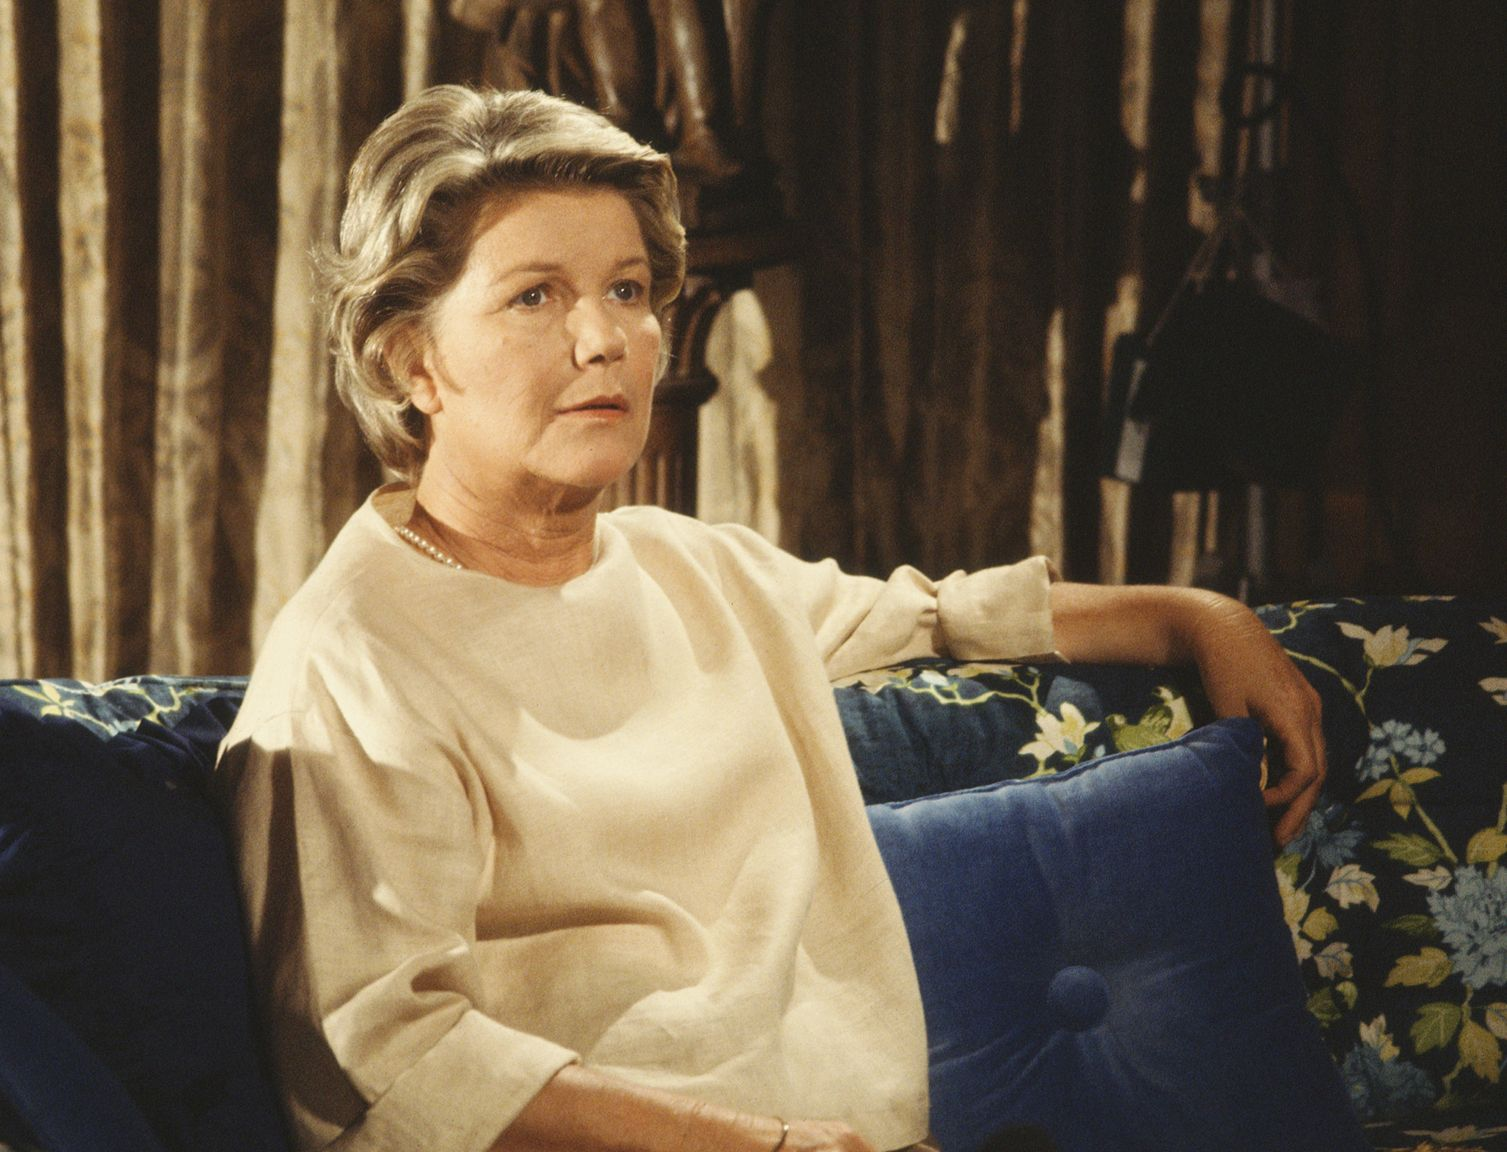 """A portrait of Barbara Bel Geddes sitting on a sofa on the American television series """"Dallas"""" on January 01, 1979 